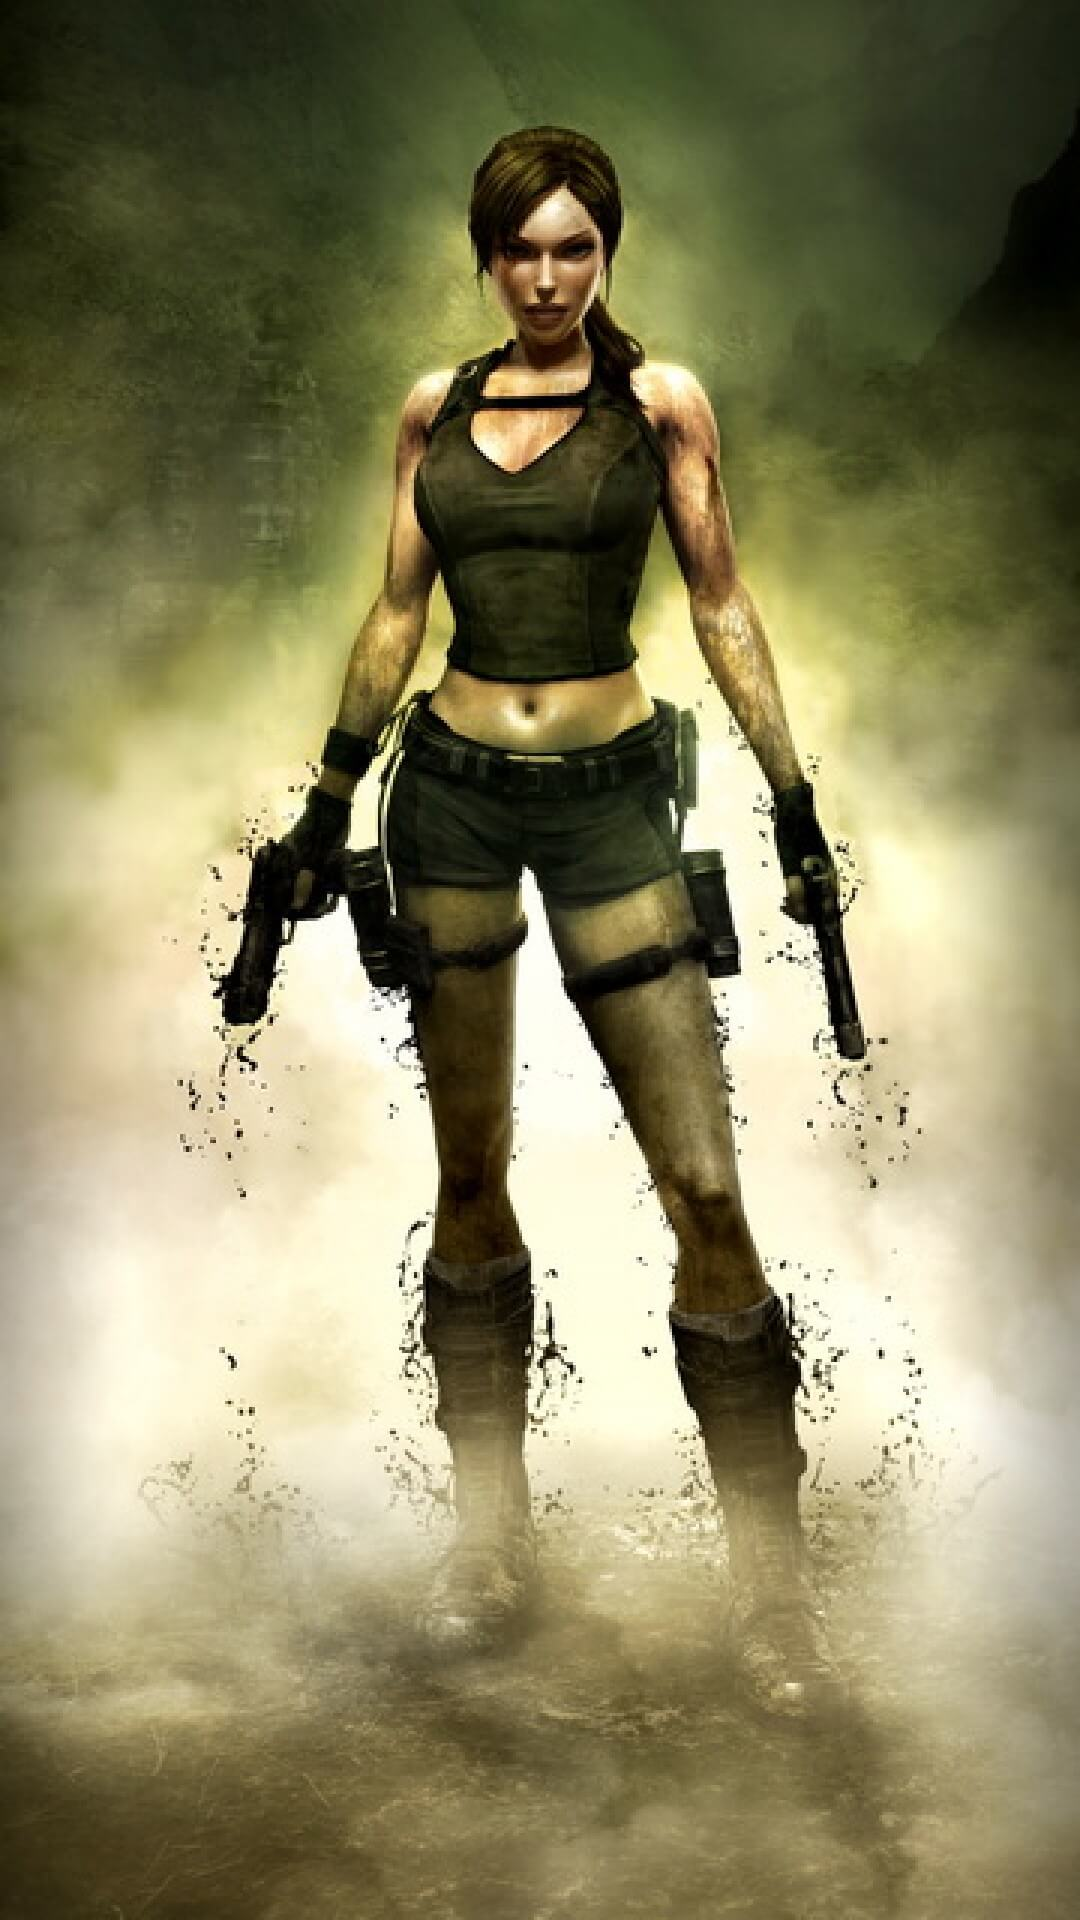 tomb raider iphone 7 wallpaper